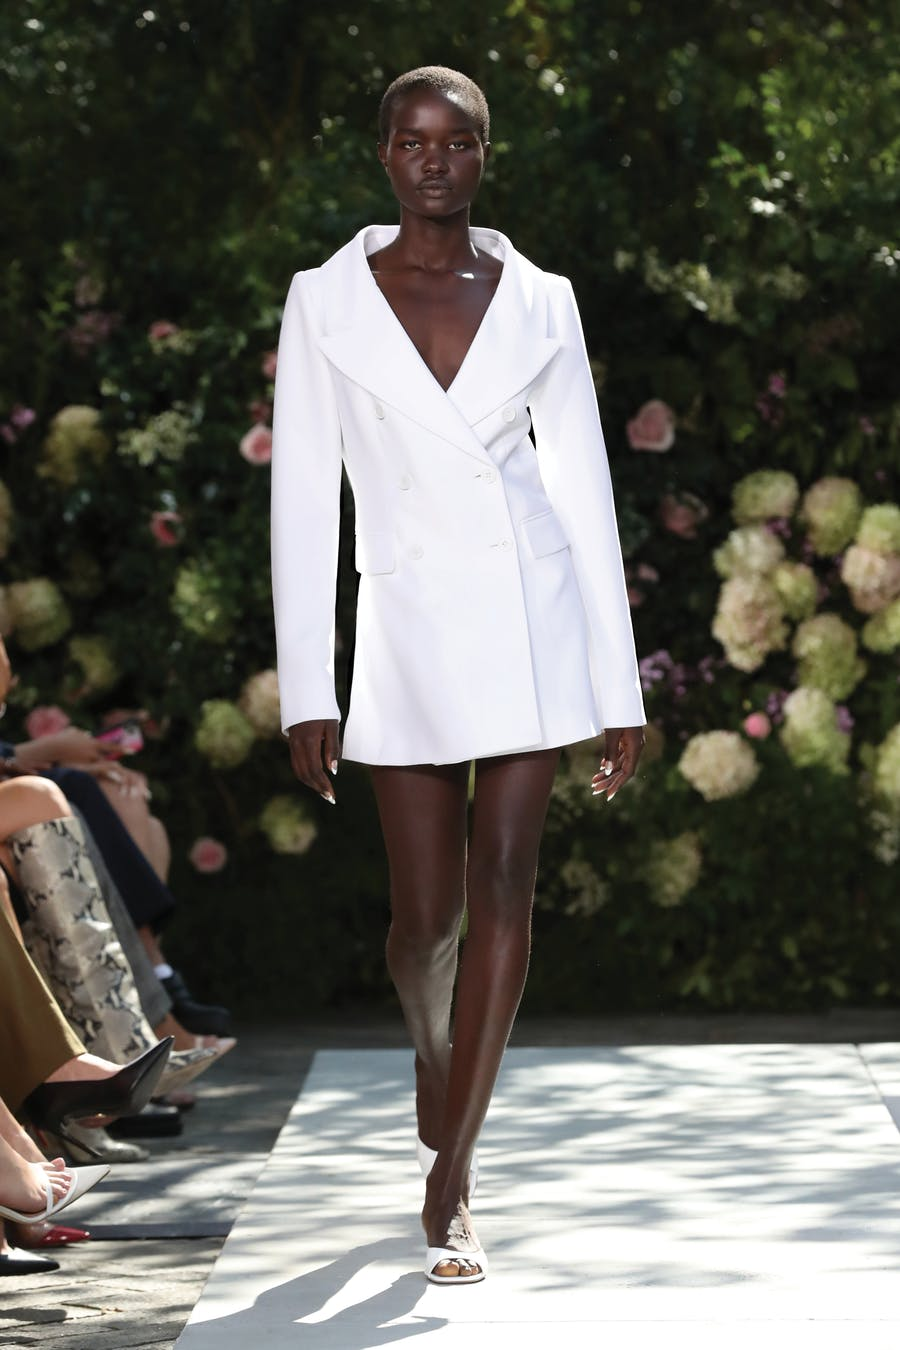 ss22-look-04